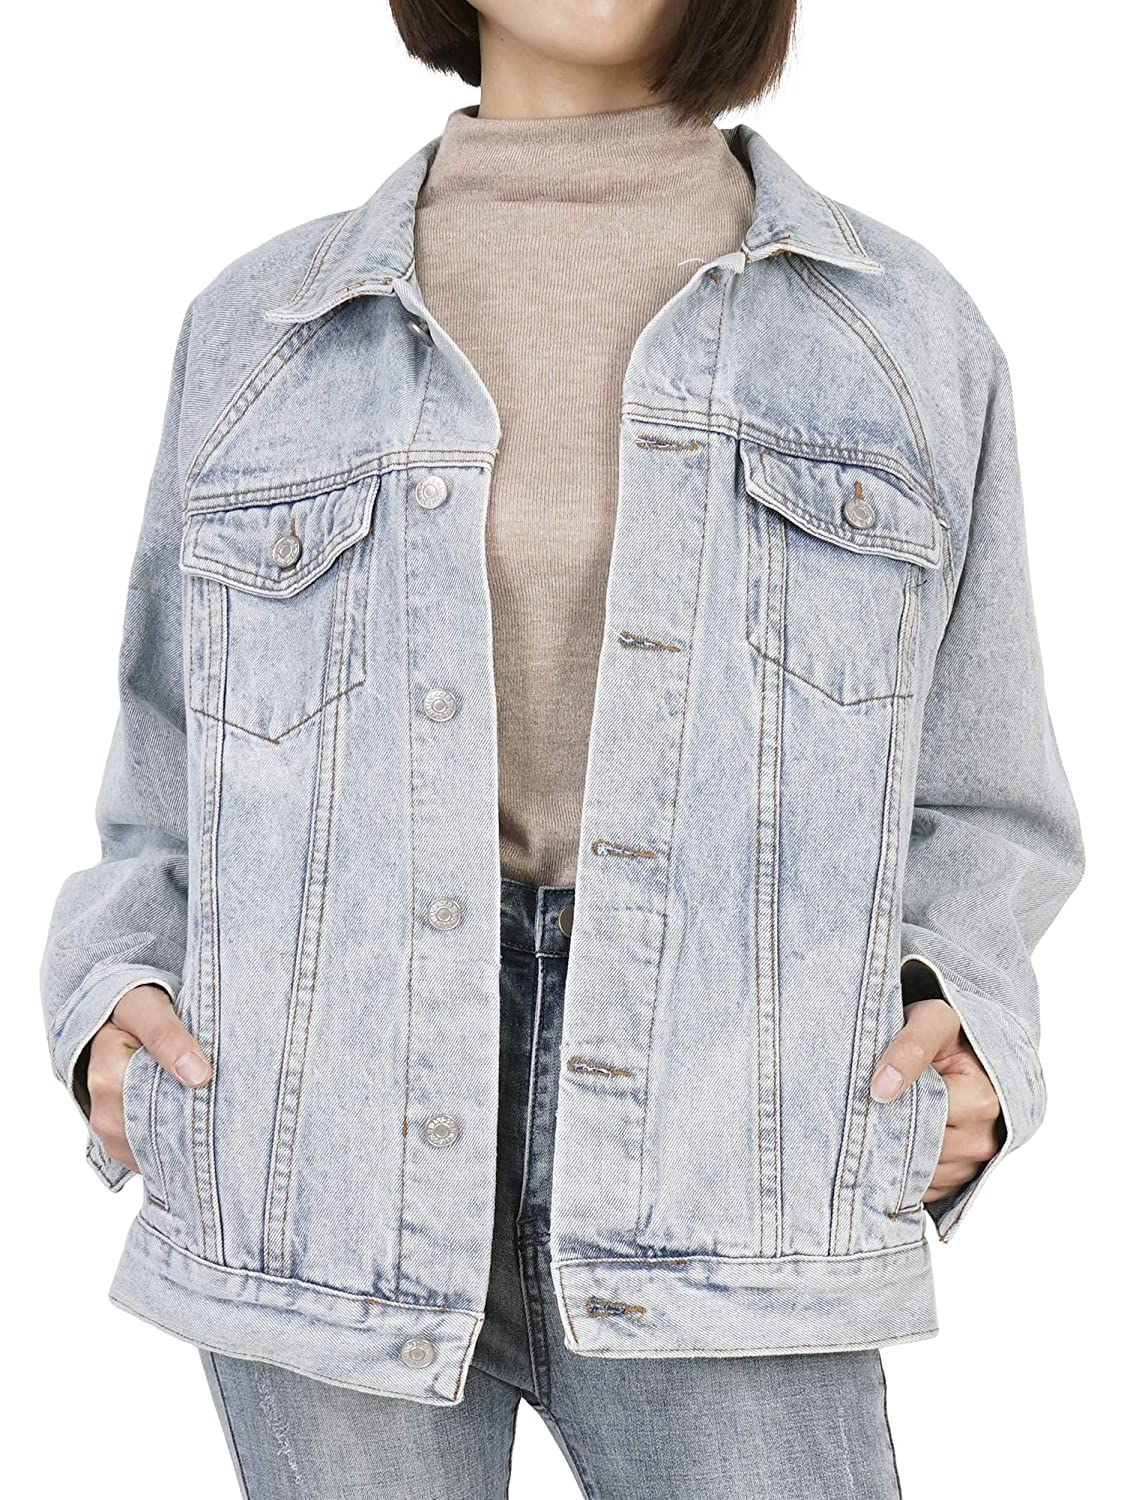 Dylh Junior S Personalized Boyfriend Denim Jacket Casual Jean Coat